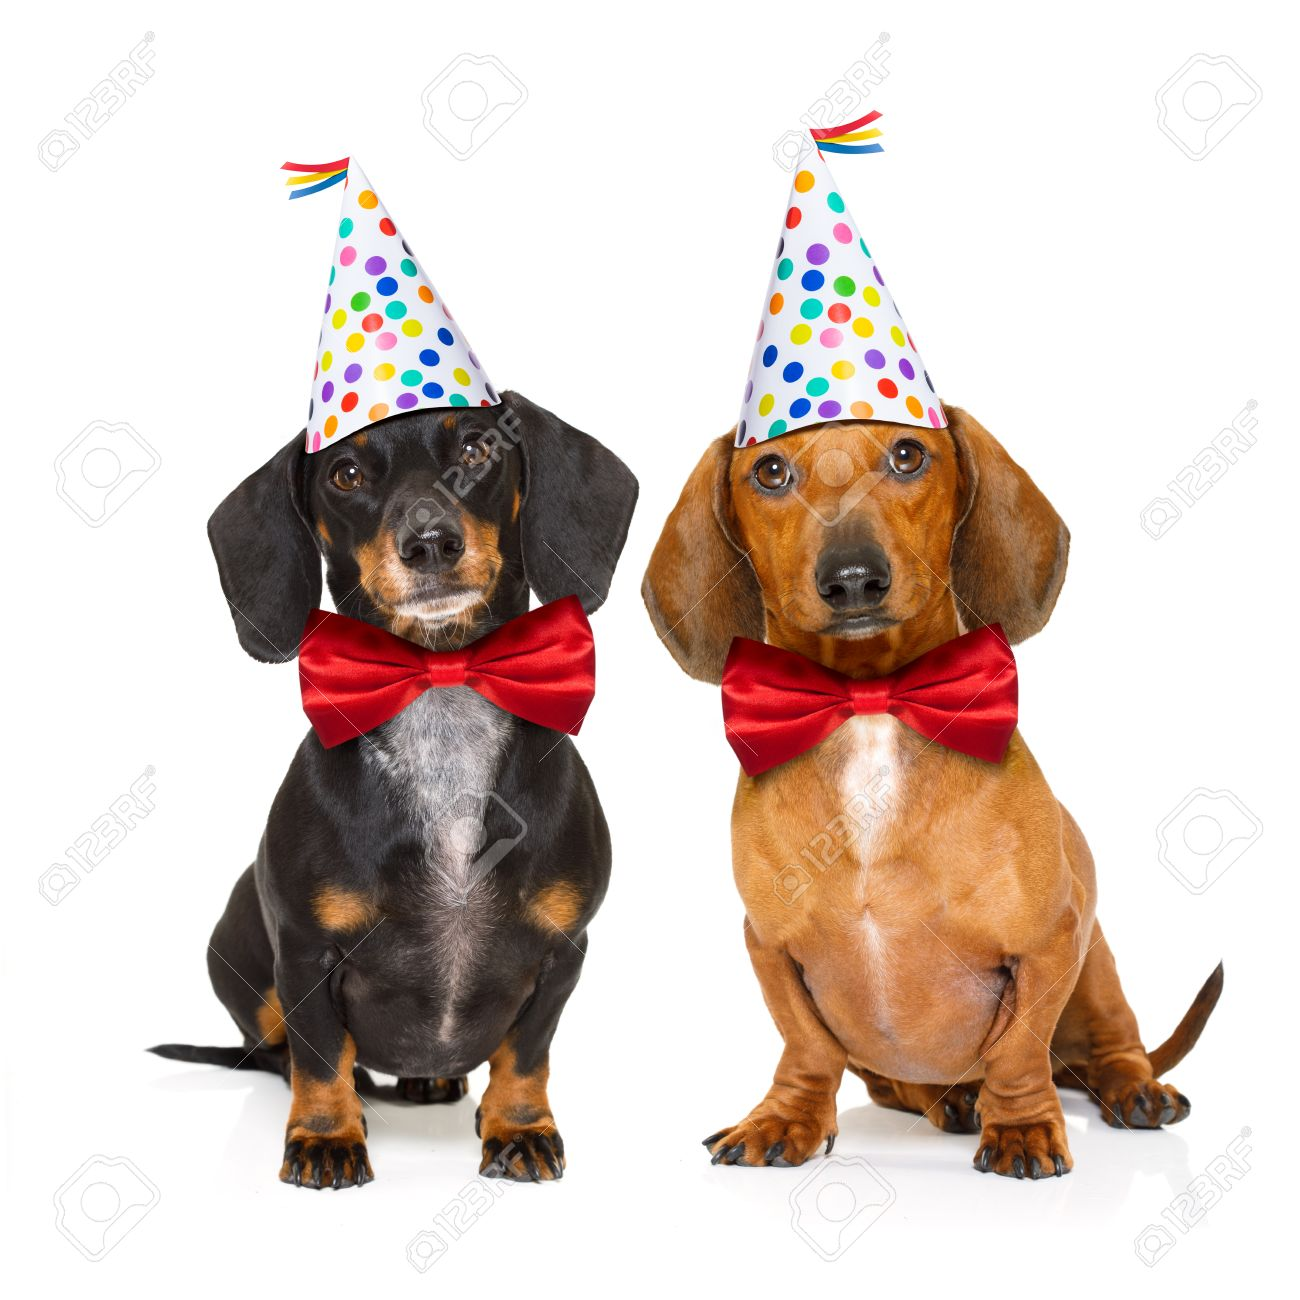 Image of: Compilation Couple Of Two Dachshund Or Sausage Dogs Hungry For Happy Birthday Cake With Candles Dogs Love Couple Of Two Dachshund Or Sausage Dogs Hungry For Happy Stock